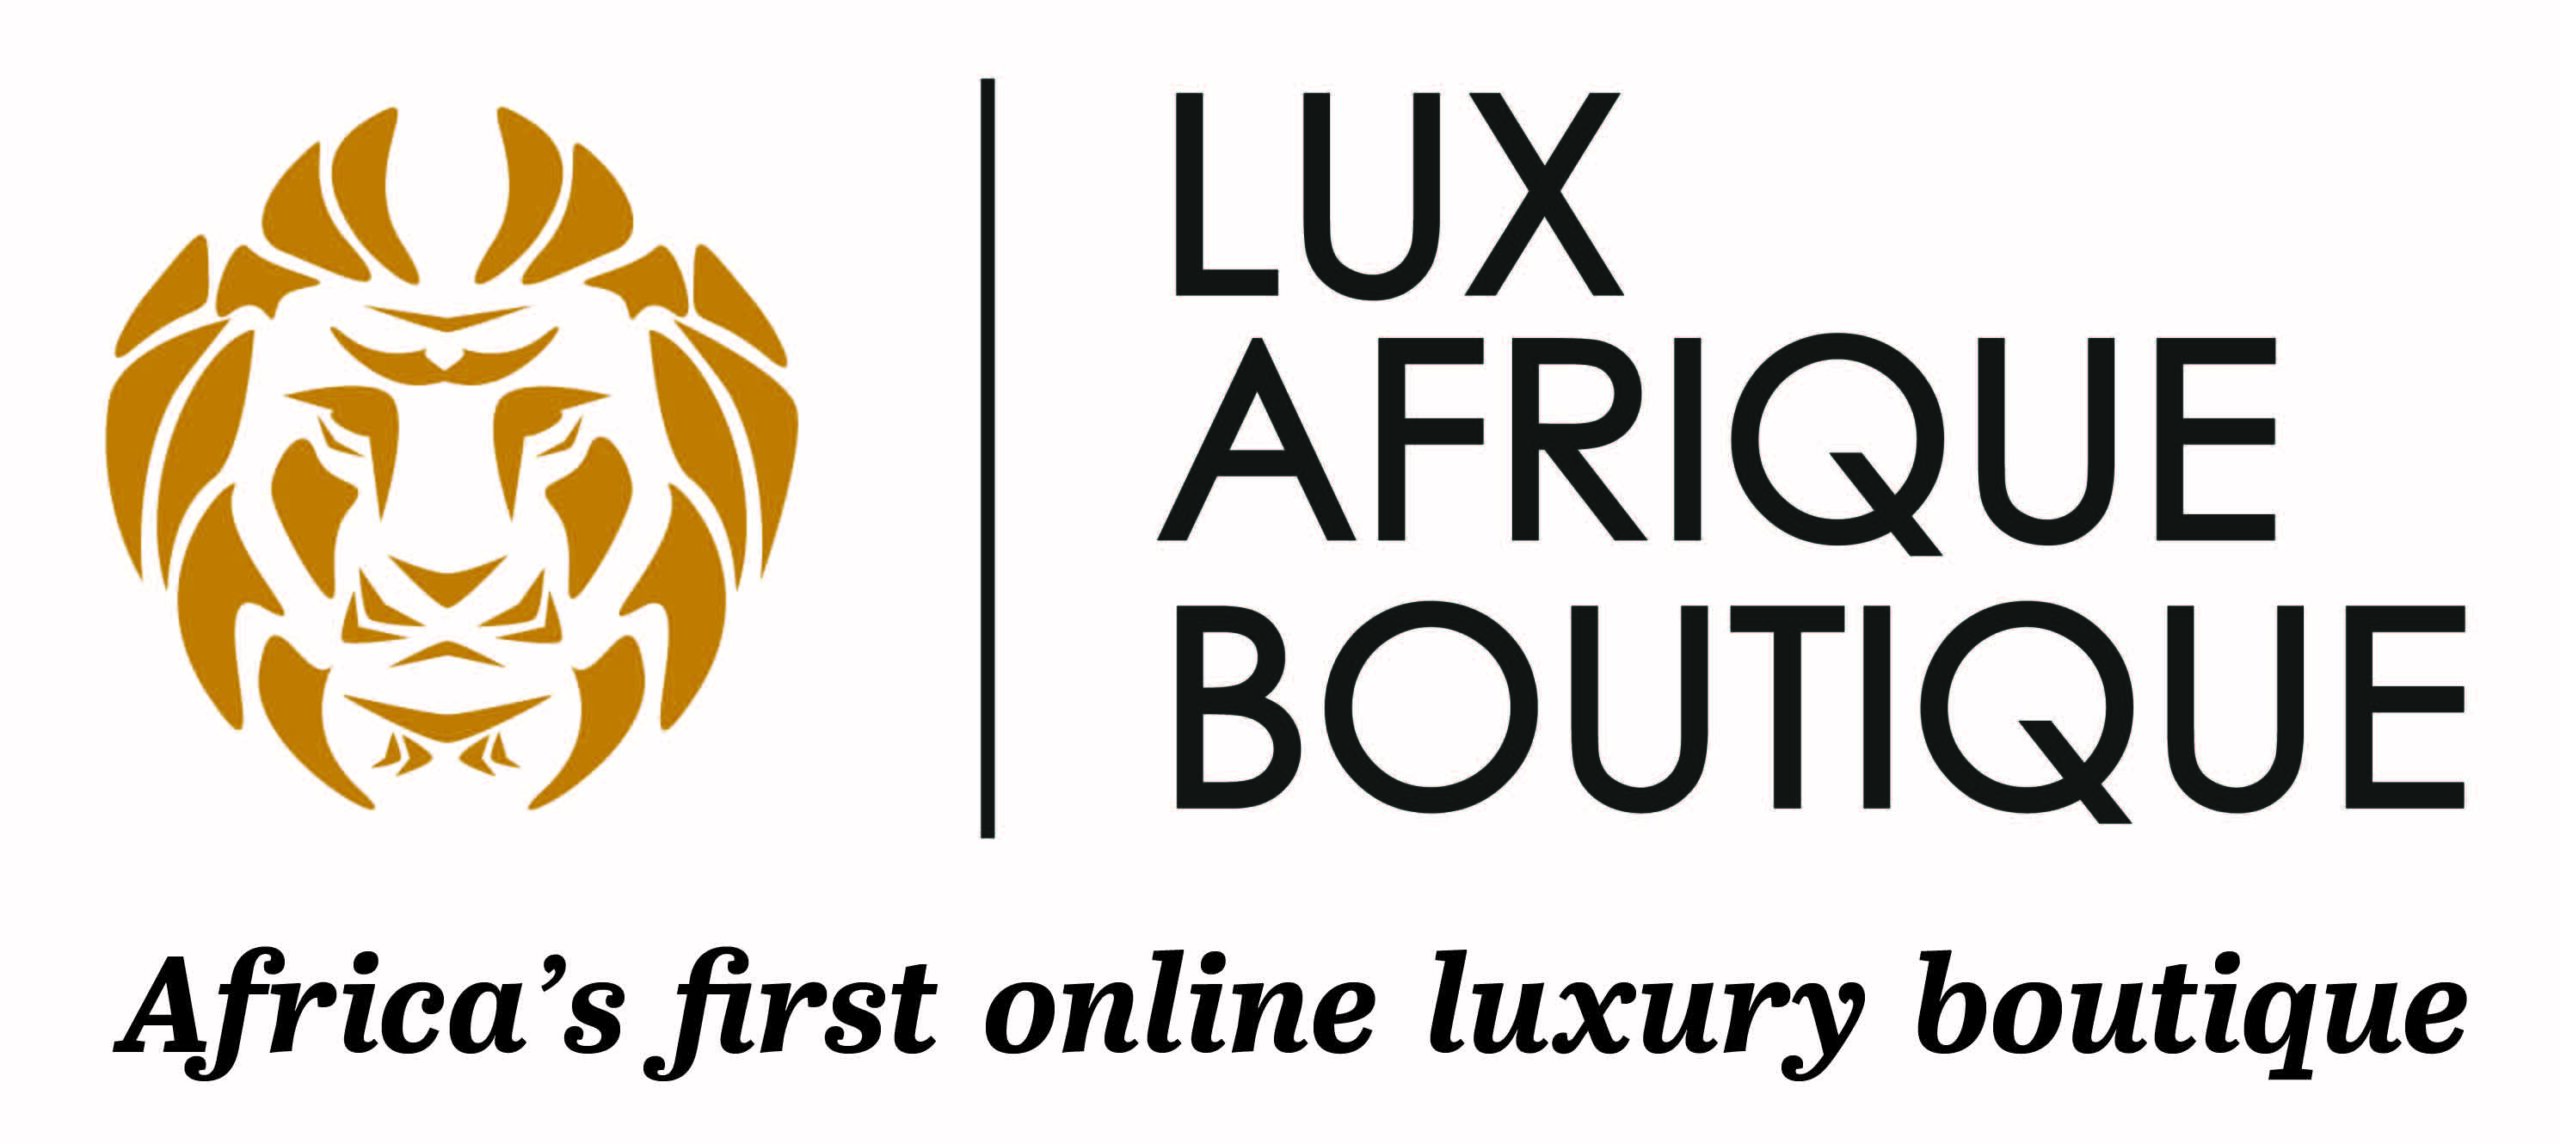 Lux Afrique Group opens Africa's first luxury e-commerce boutique, Lux Afrique BoutiqueLux Afrique Group opens Africa's first luxury e-commerce boutique, Lux Afrique Boutique